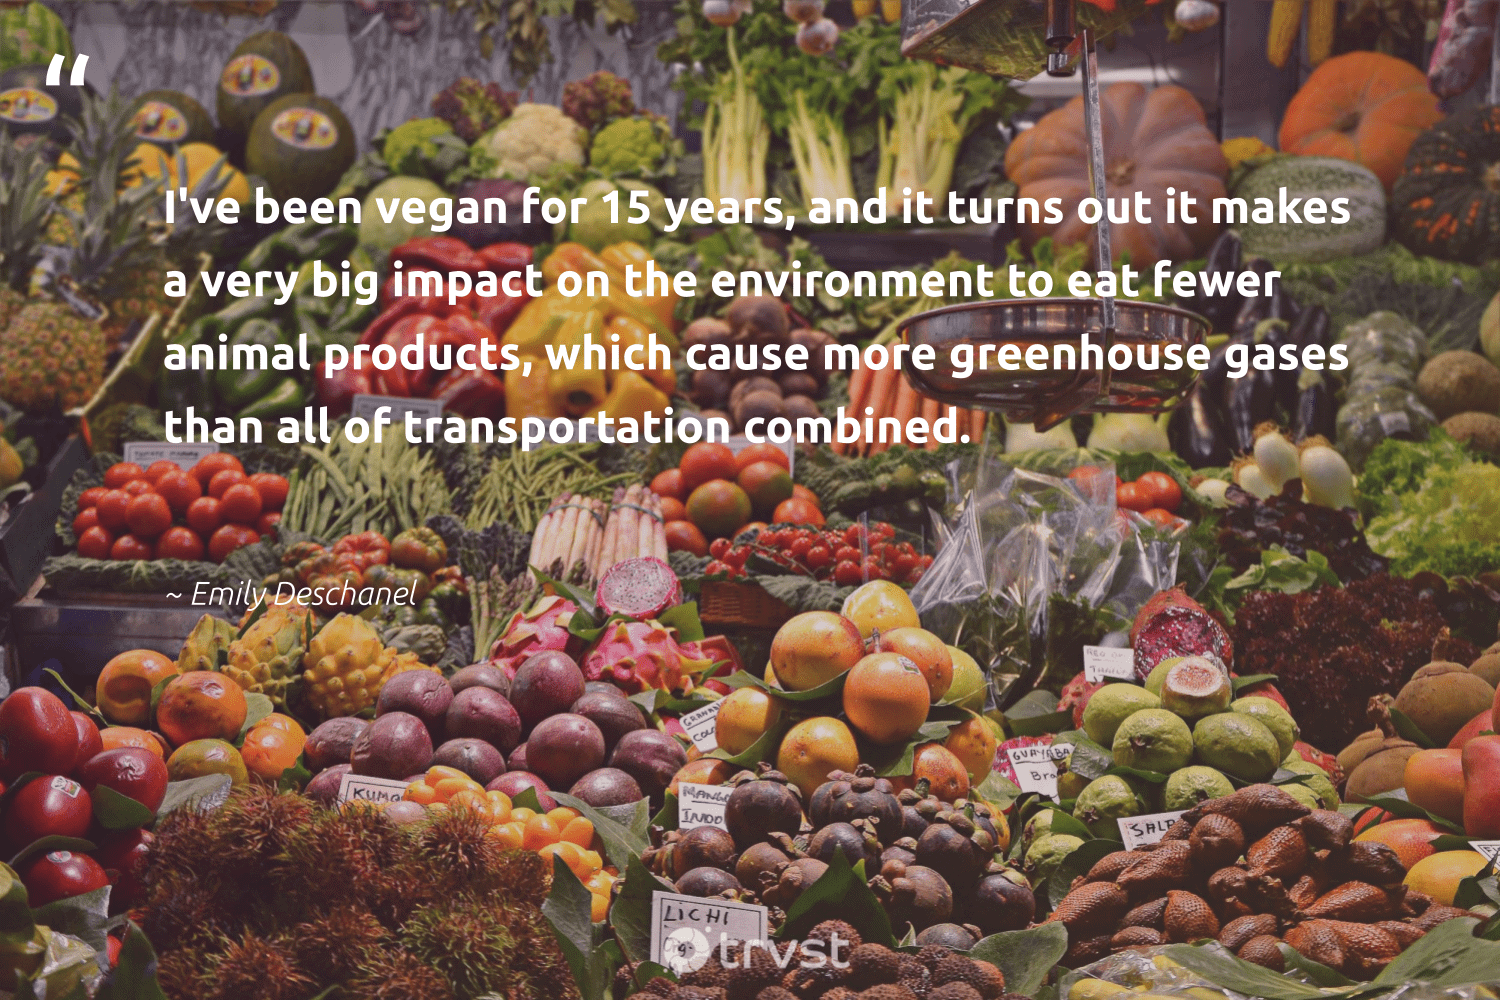 """""""I've been vegan for 15 years, and it turns out it makes a very big impact on the environment to eat fewer animal products, which cause more greenhouse gases than all of transportation combined.""""  - Emily Deschanel #trvst #quotes #impact #environment #animal #cause #vegan #earth #sustainable #naturelovers #socialchange #mothernature"""